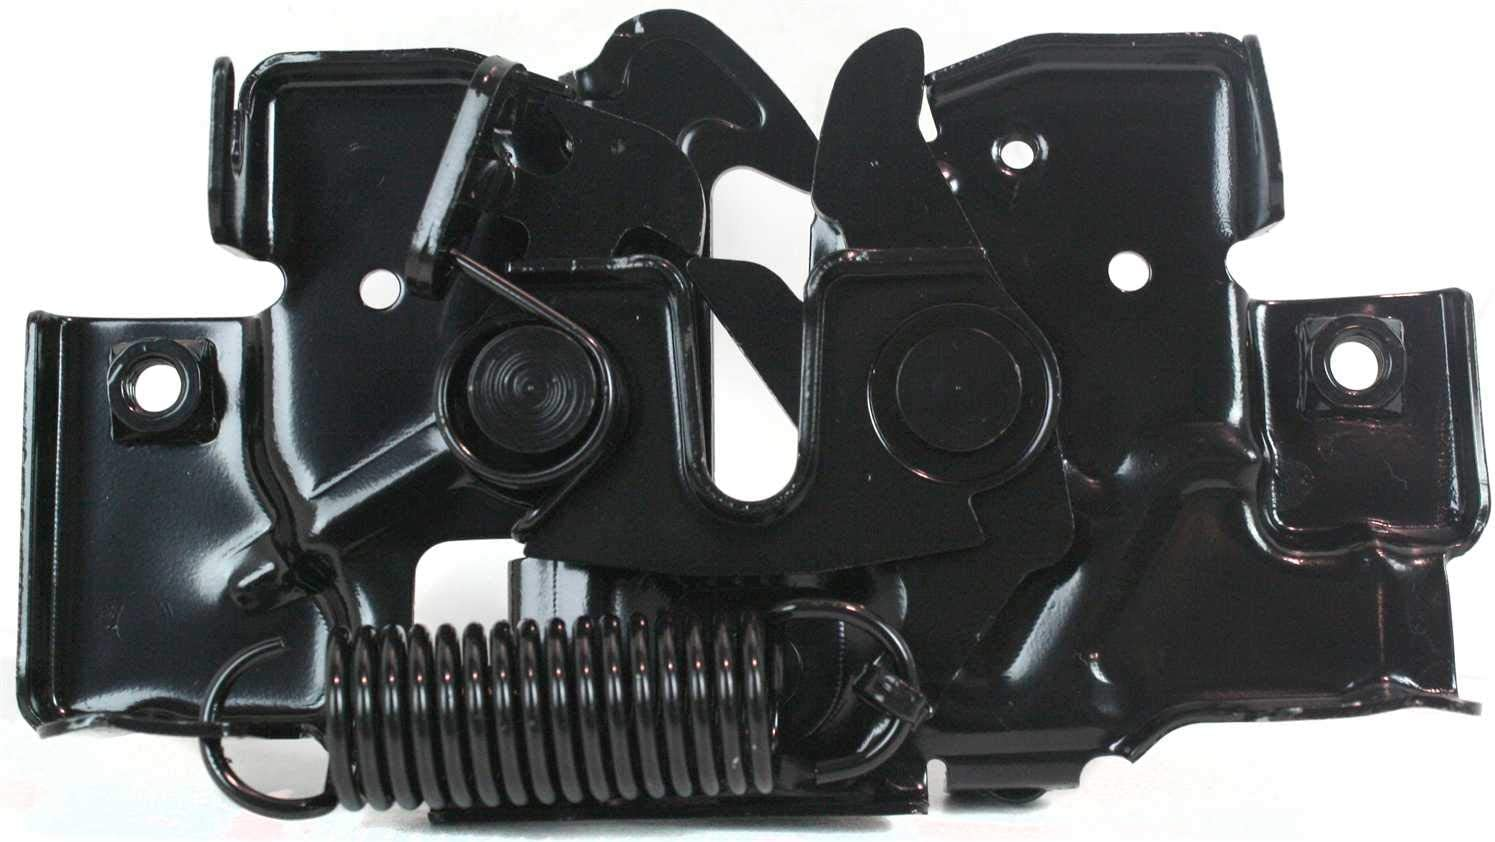 Garage-Pro Tucson Mall Hood Latch Compatible with 6 2003-2008 Mazda Max 62% OFF